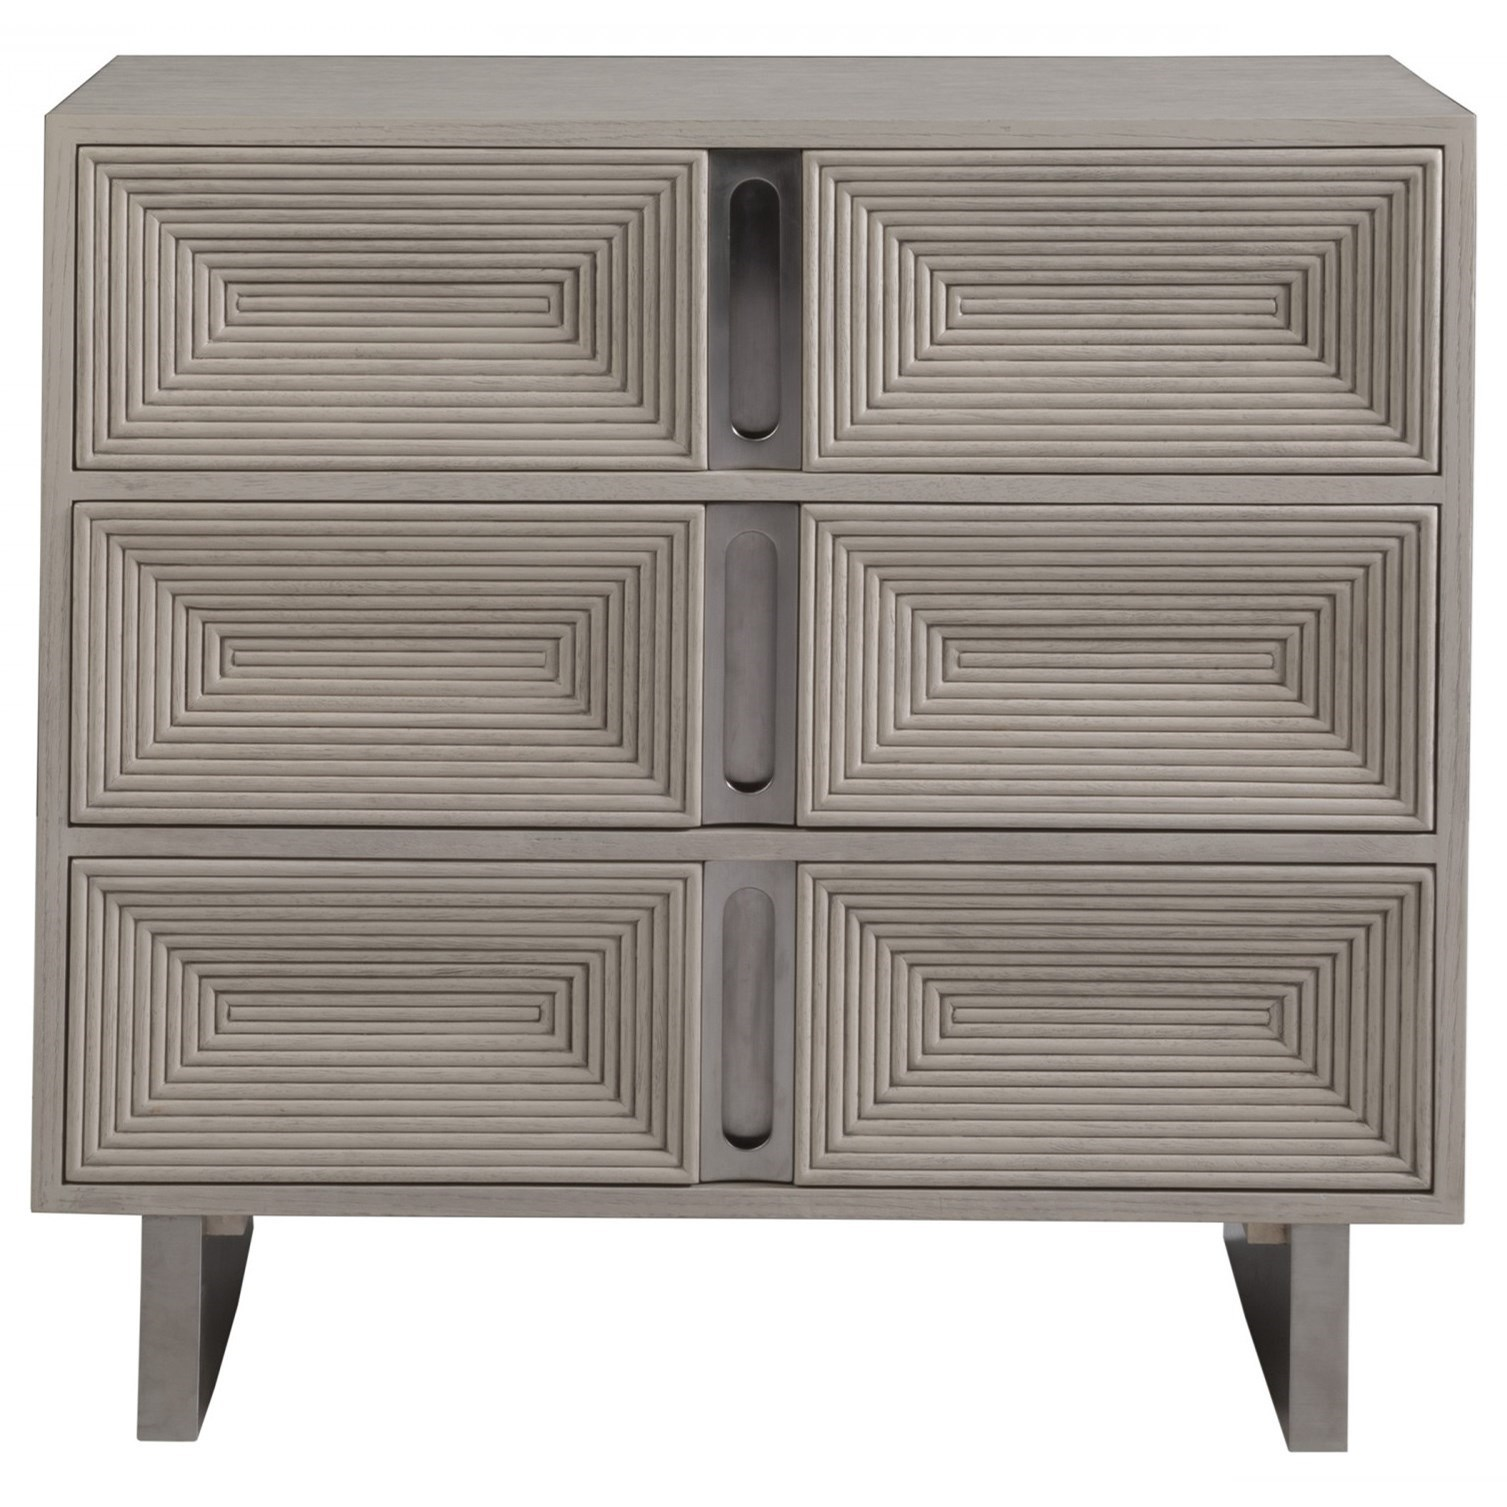 Artistica Gradient 2119 973 Contemporary 3 Drawer Hall